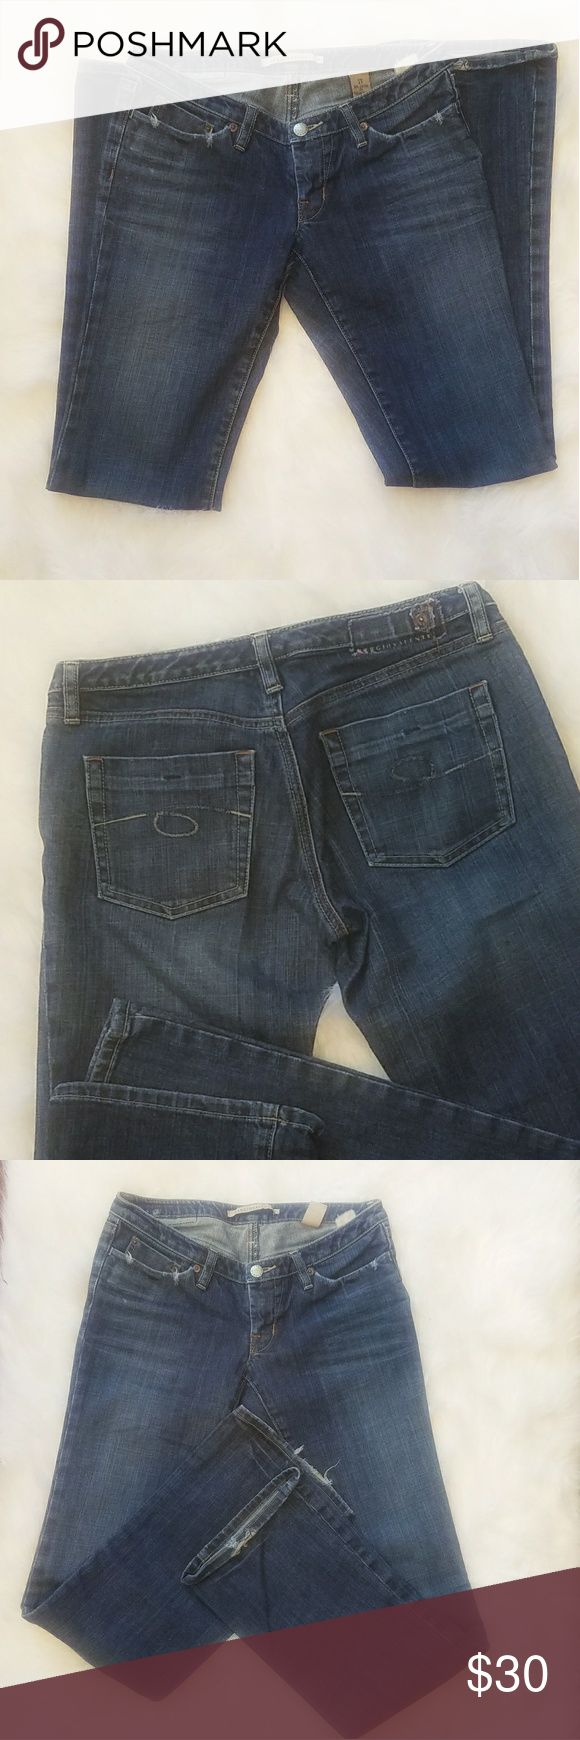 Sergio valente straight leg jeans size 27 Straight leg visual wear on The bottom of leg. 98% cotton 2%  polyurethane BUNDLE YOUR LIKES FOR A PERSONALIZED NO OBLIGATION OFFER, OR, HIT THE OFFER BUTTON AND SUBMIT YOUR OWN PERSONAL OFFER Sergio Valente Jeans Straight Leg